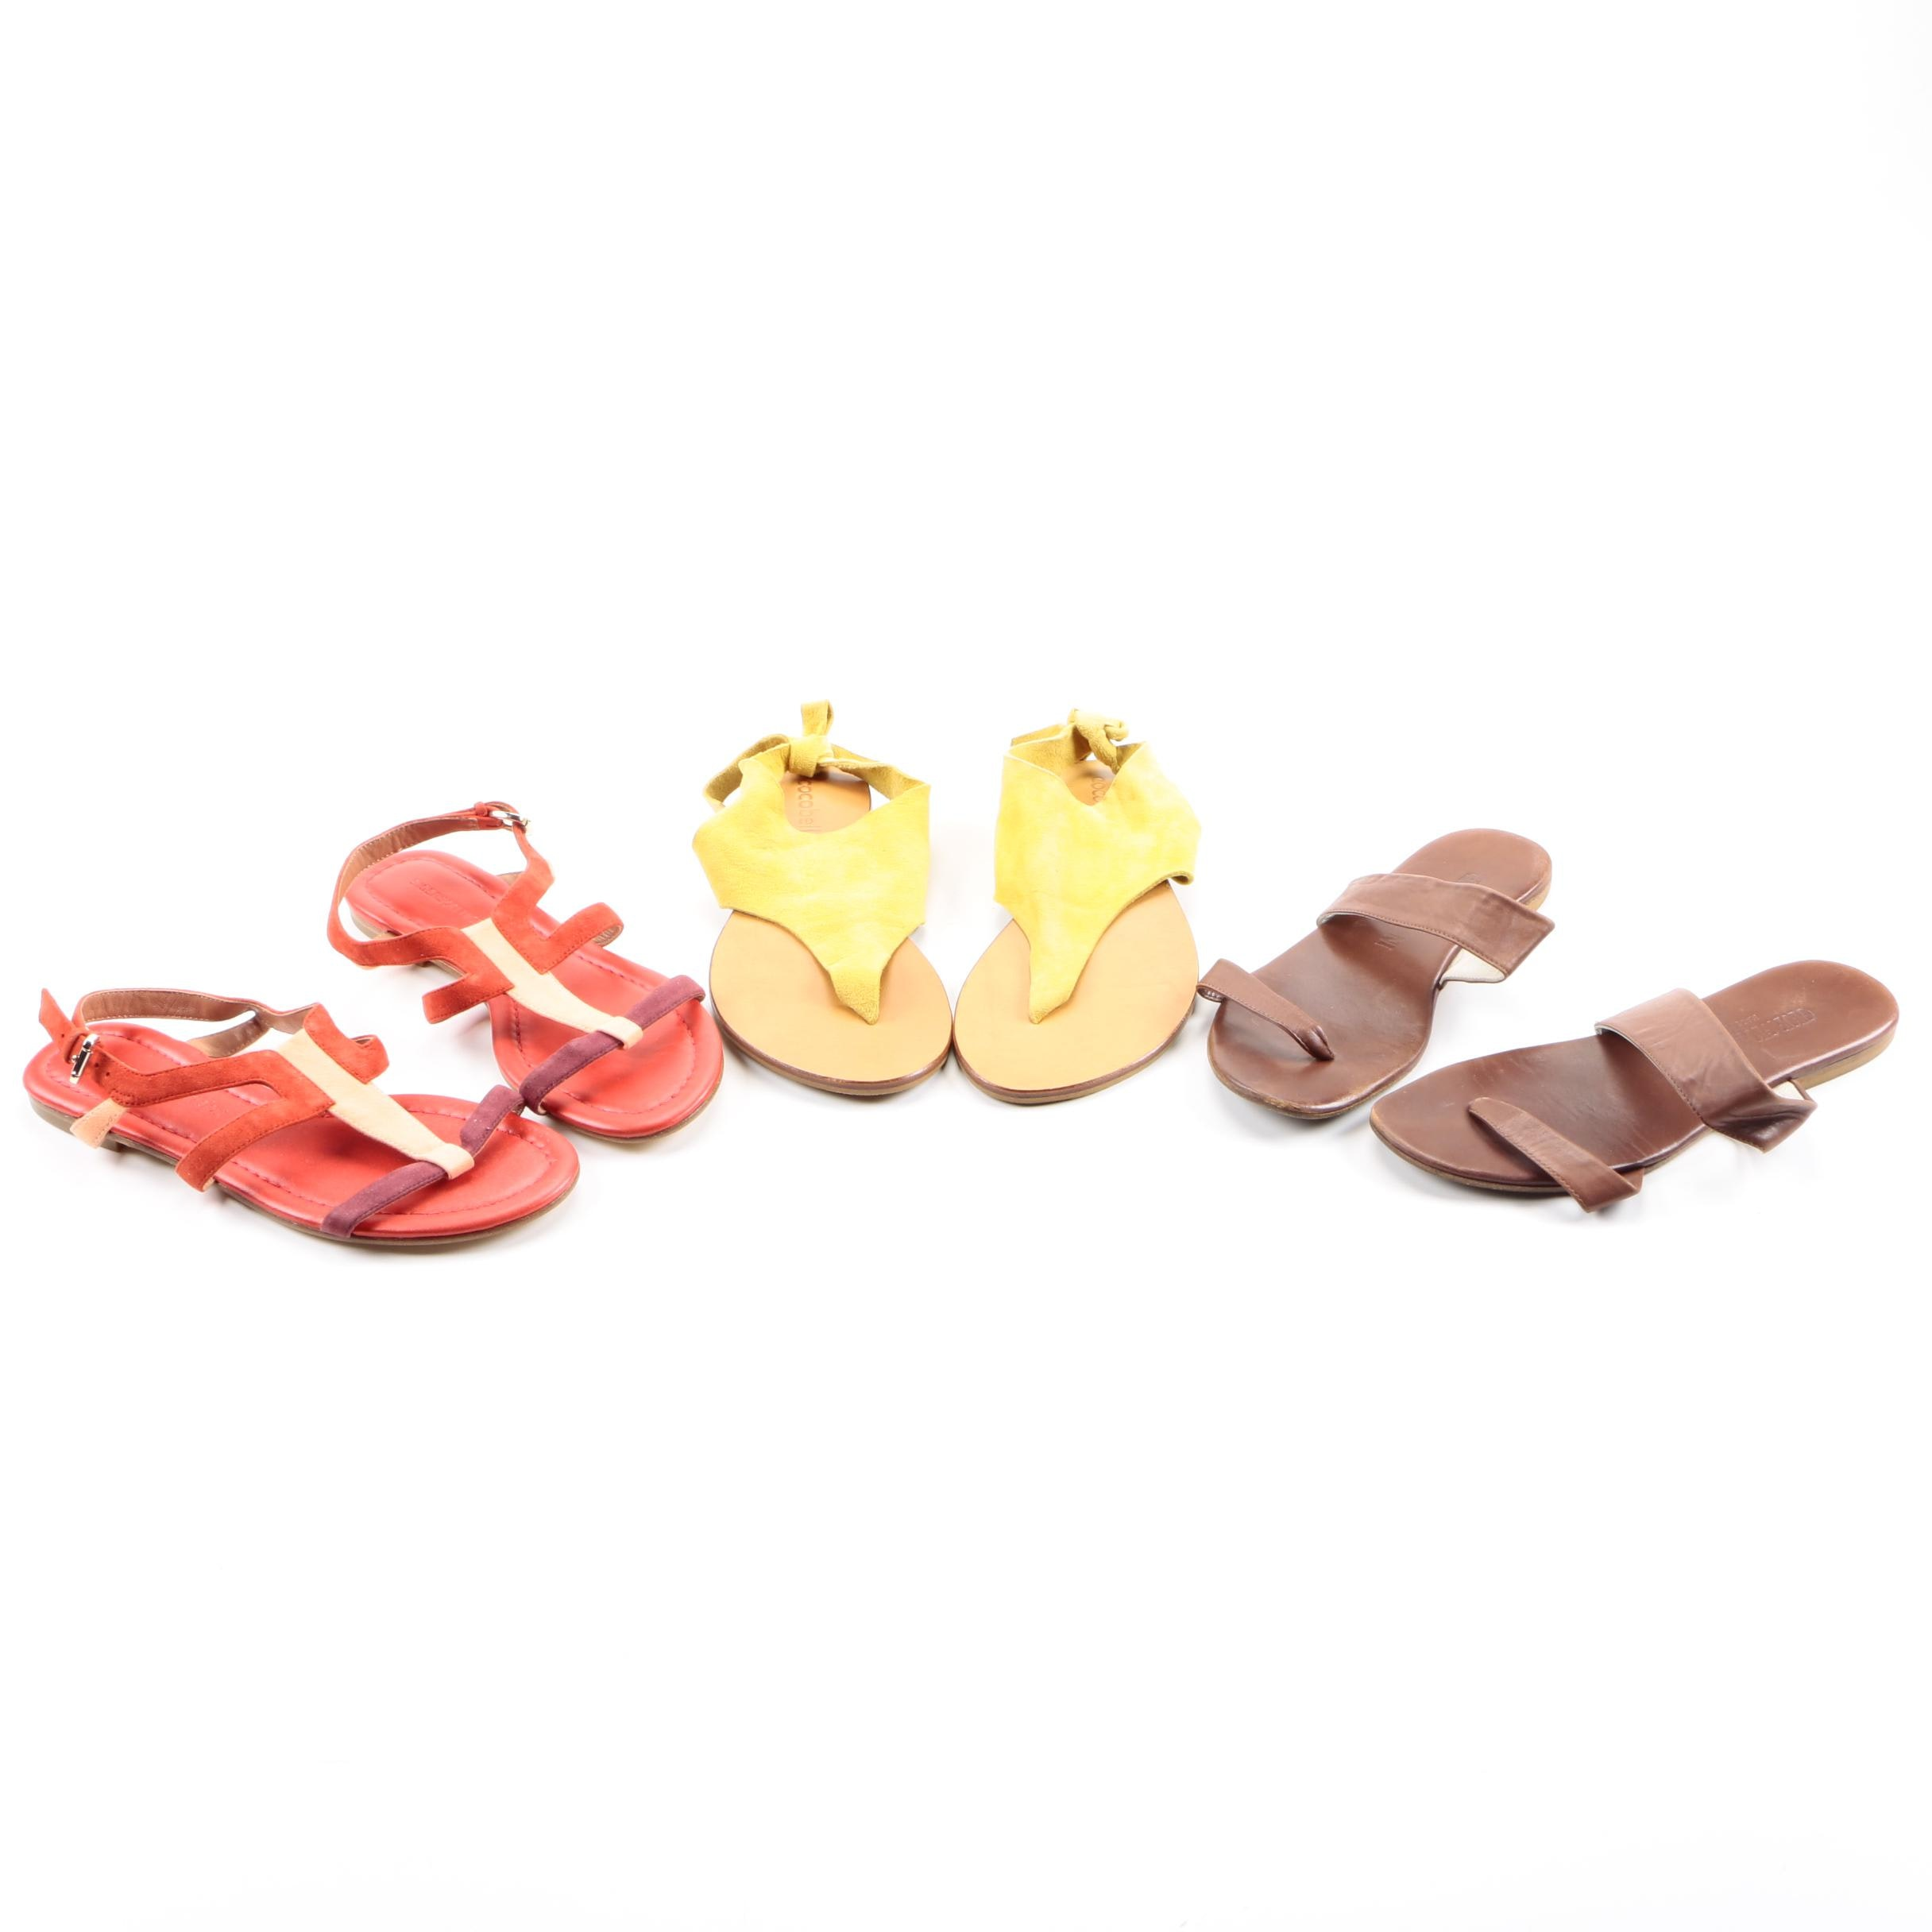 Assortment of Sandals featuring Giorgio Armani and Sigerson Morrison